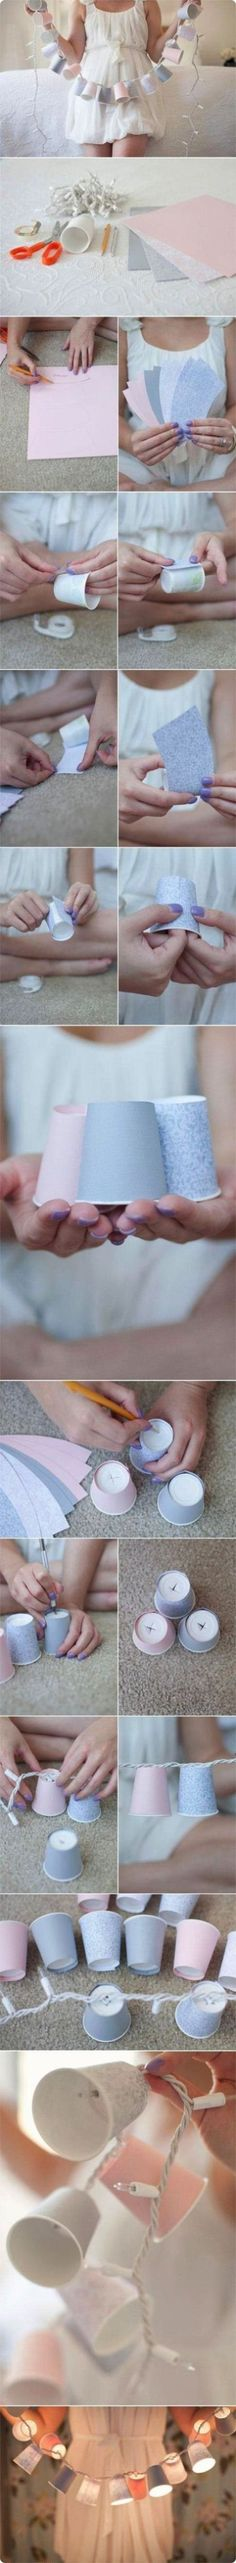 DIY :: Decorative Paper Cup Light Shade